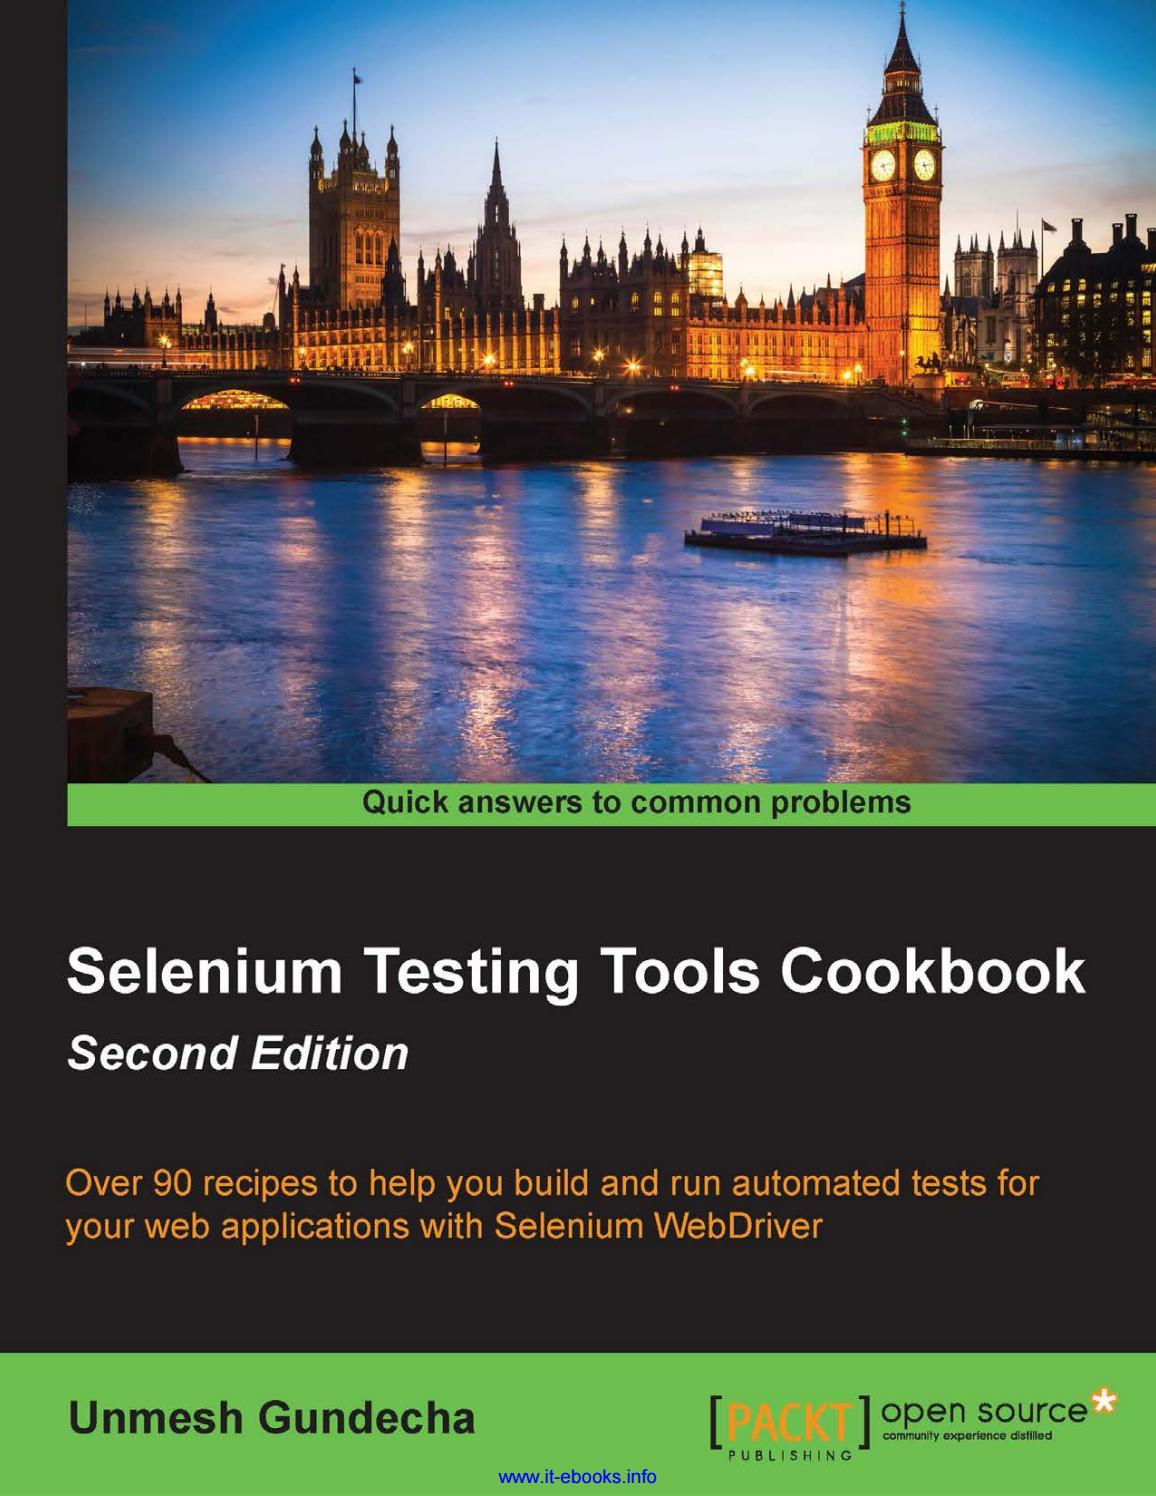 Selenium is just a portable software testing structure for